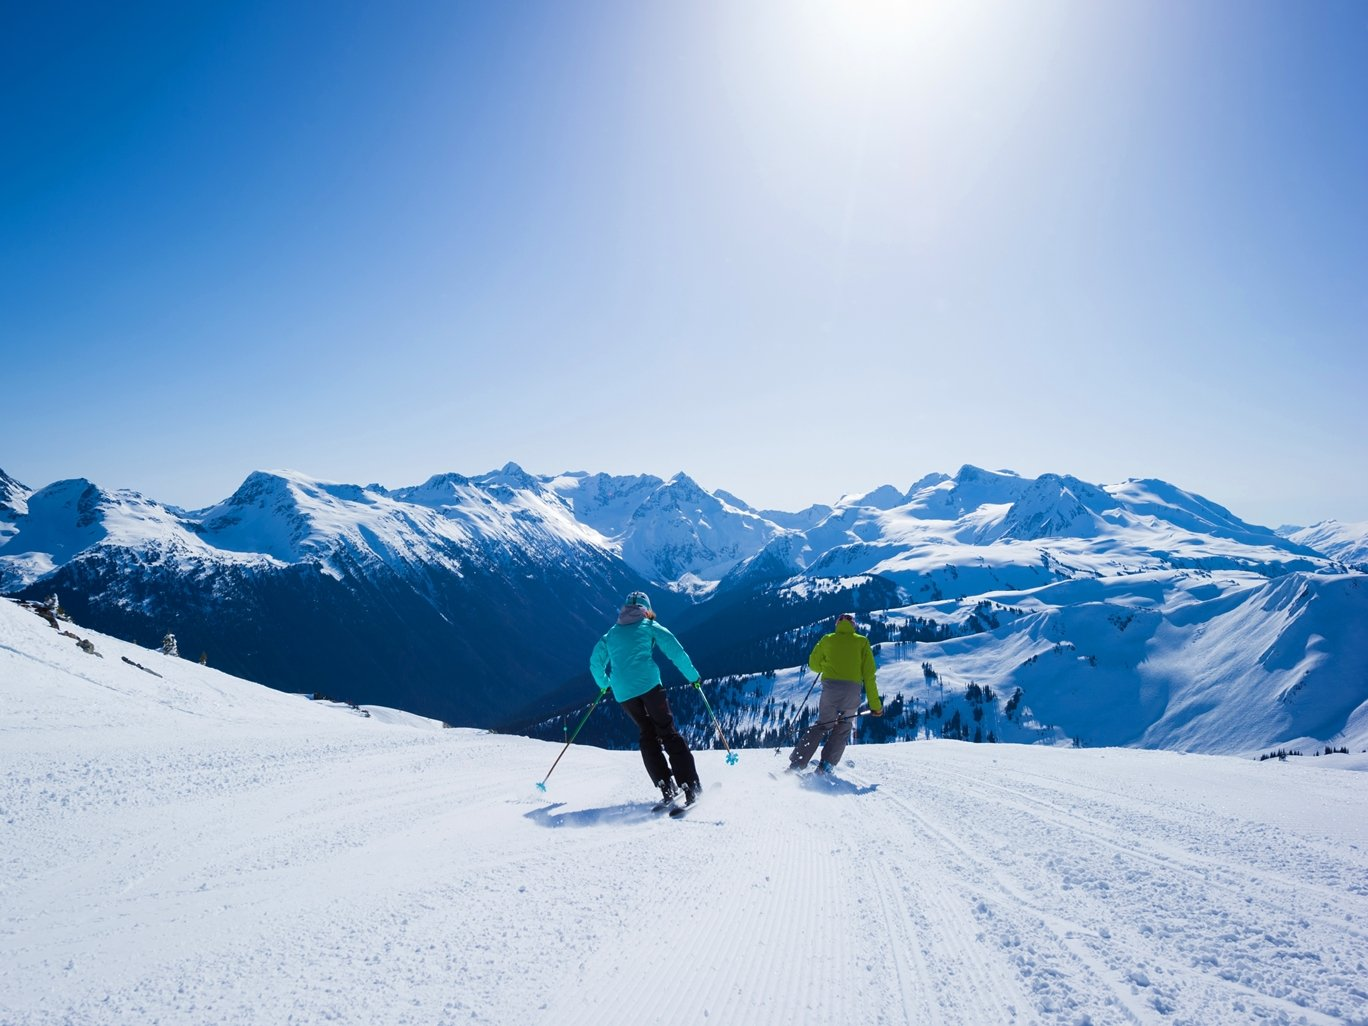 Spring Skiing in Whister Photo by Mike Crane